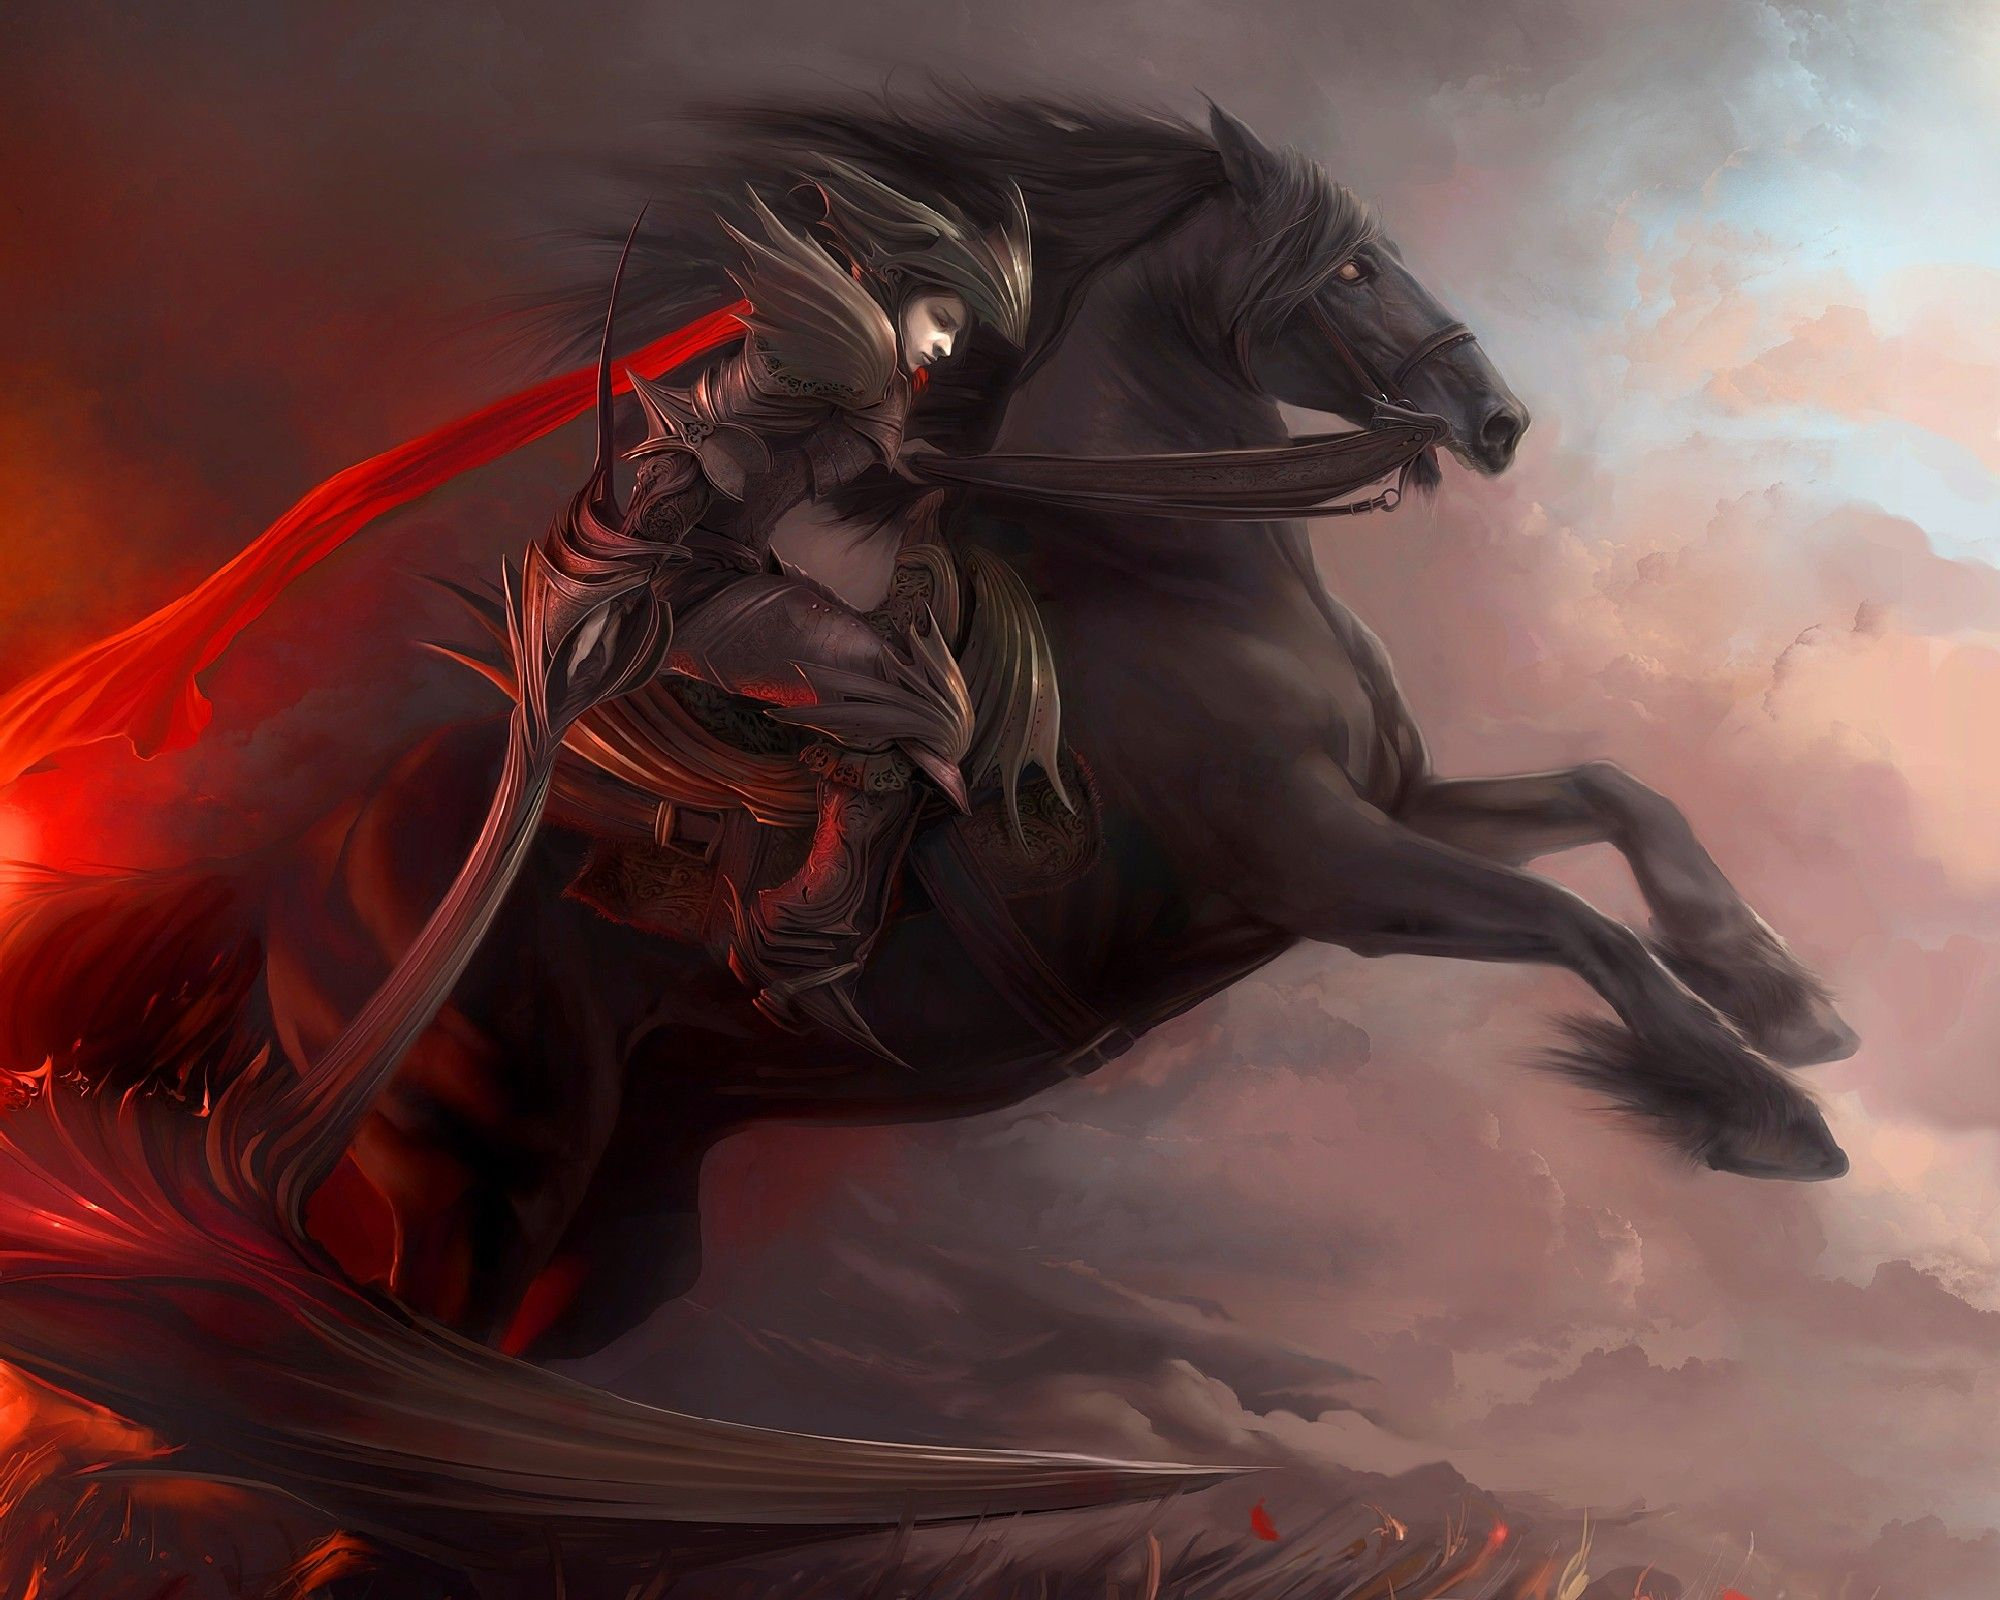 Fantasy War Horse Art 2000x1600 Download Hd Wallpaper Wallpapertip